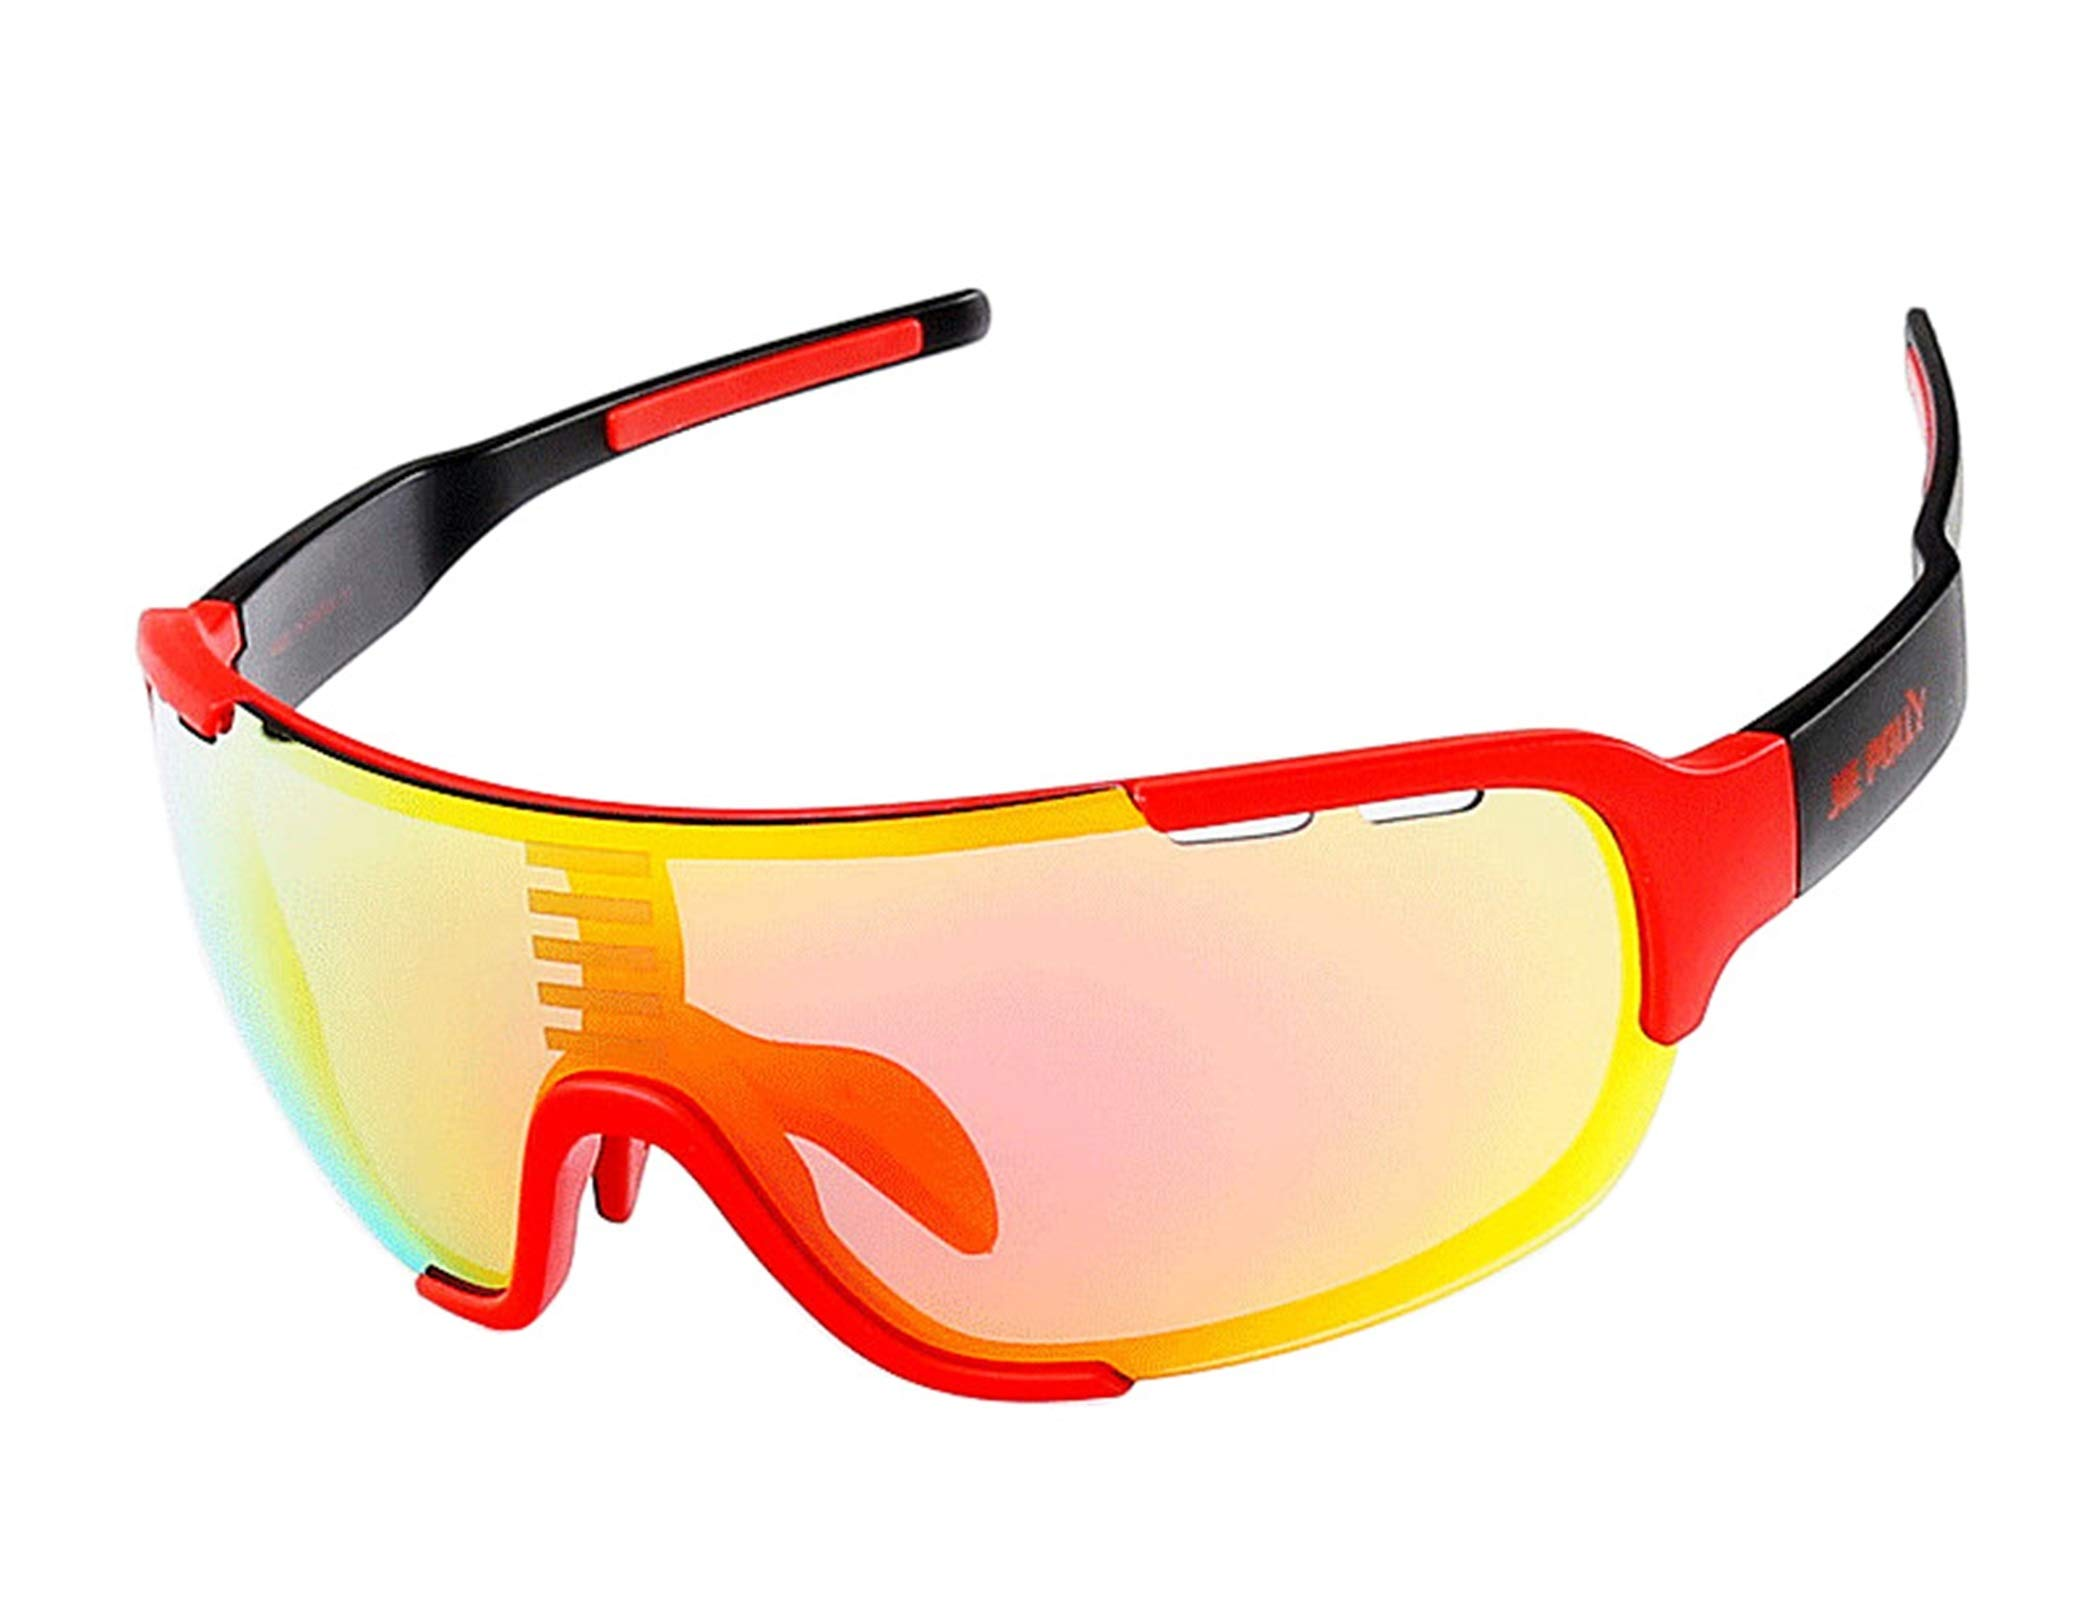 Adisaer Cycling Sunglasses Flight Jacket Cycling Color Changing Sports Fishing Outdoor Hiking Goggles Red Black for Adults